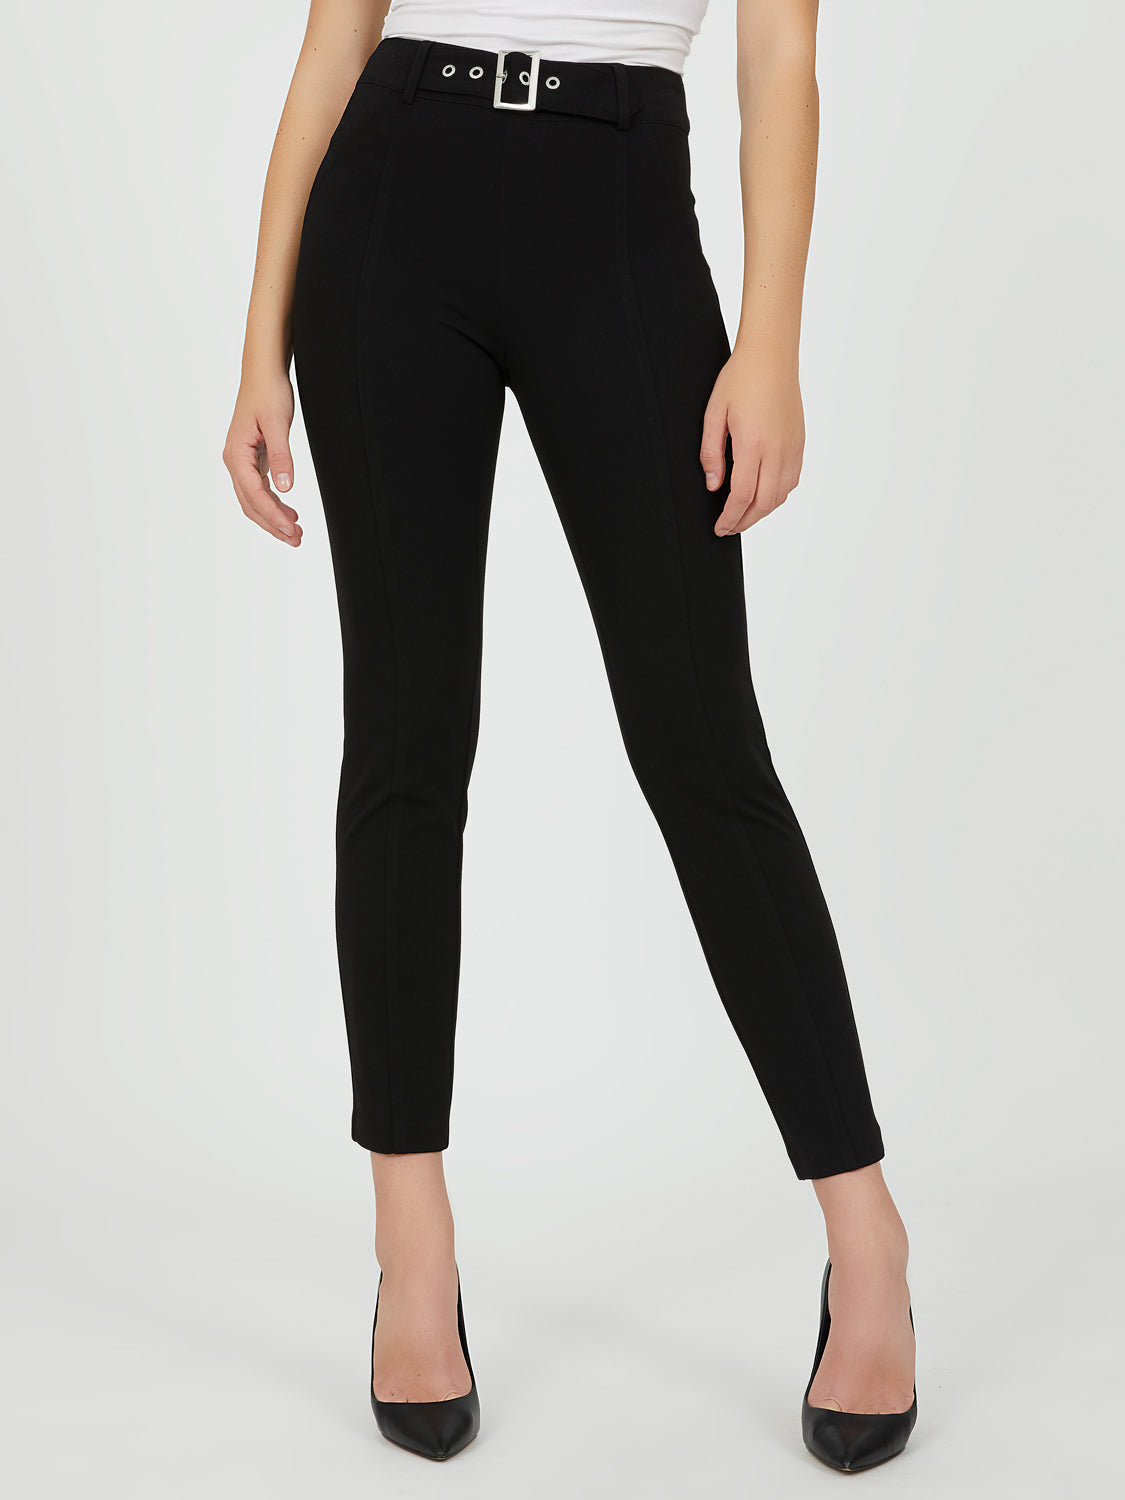 Pull-On Crepe Knit Skinny Ankle Pants